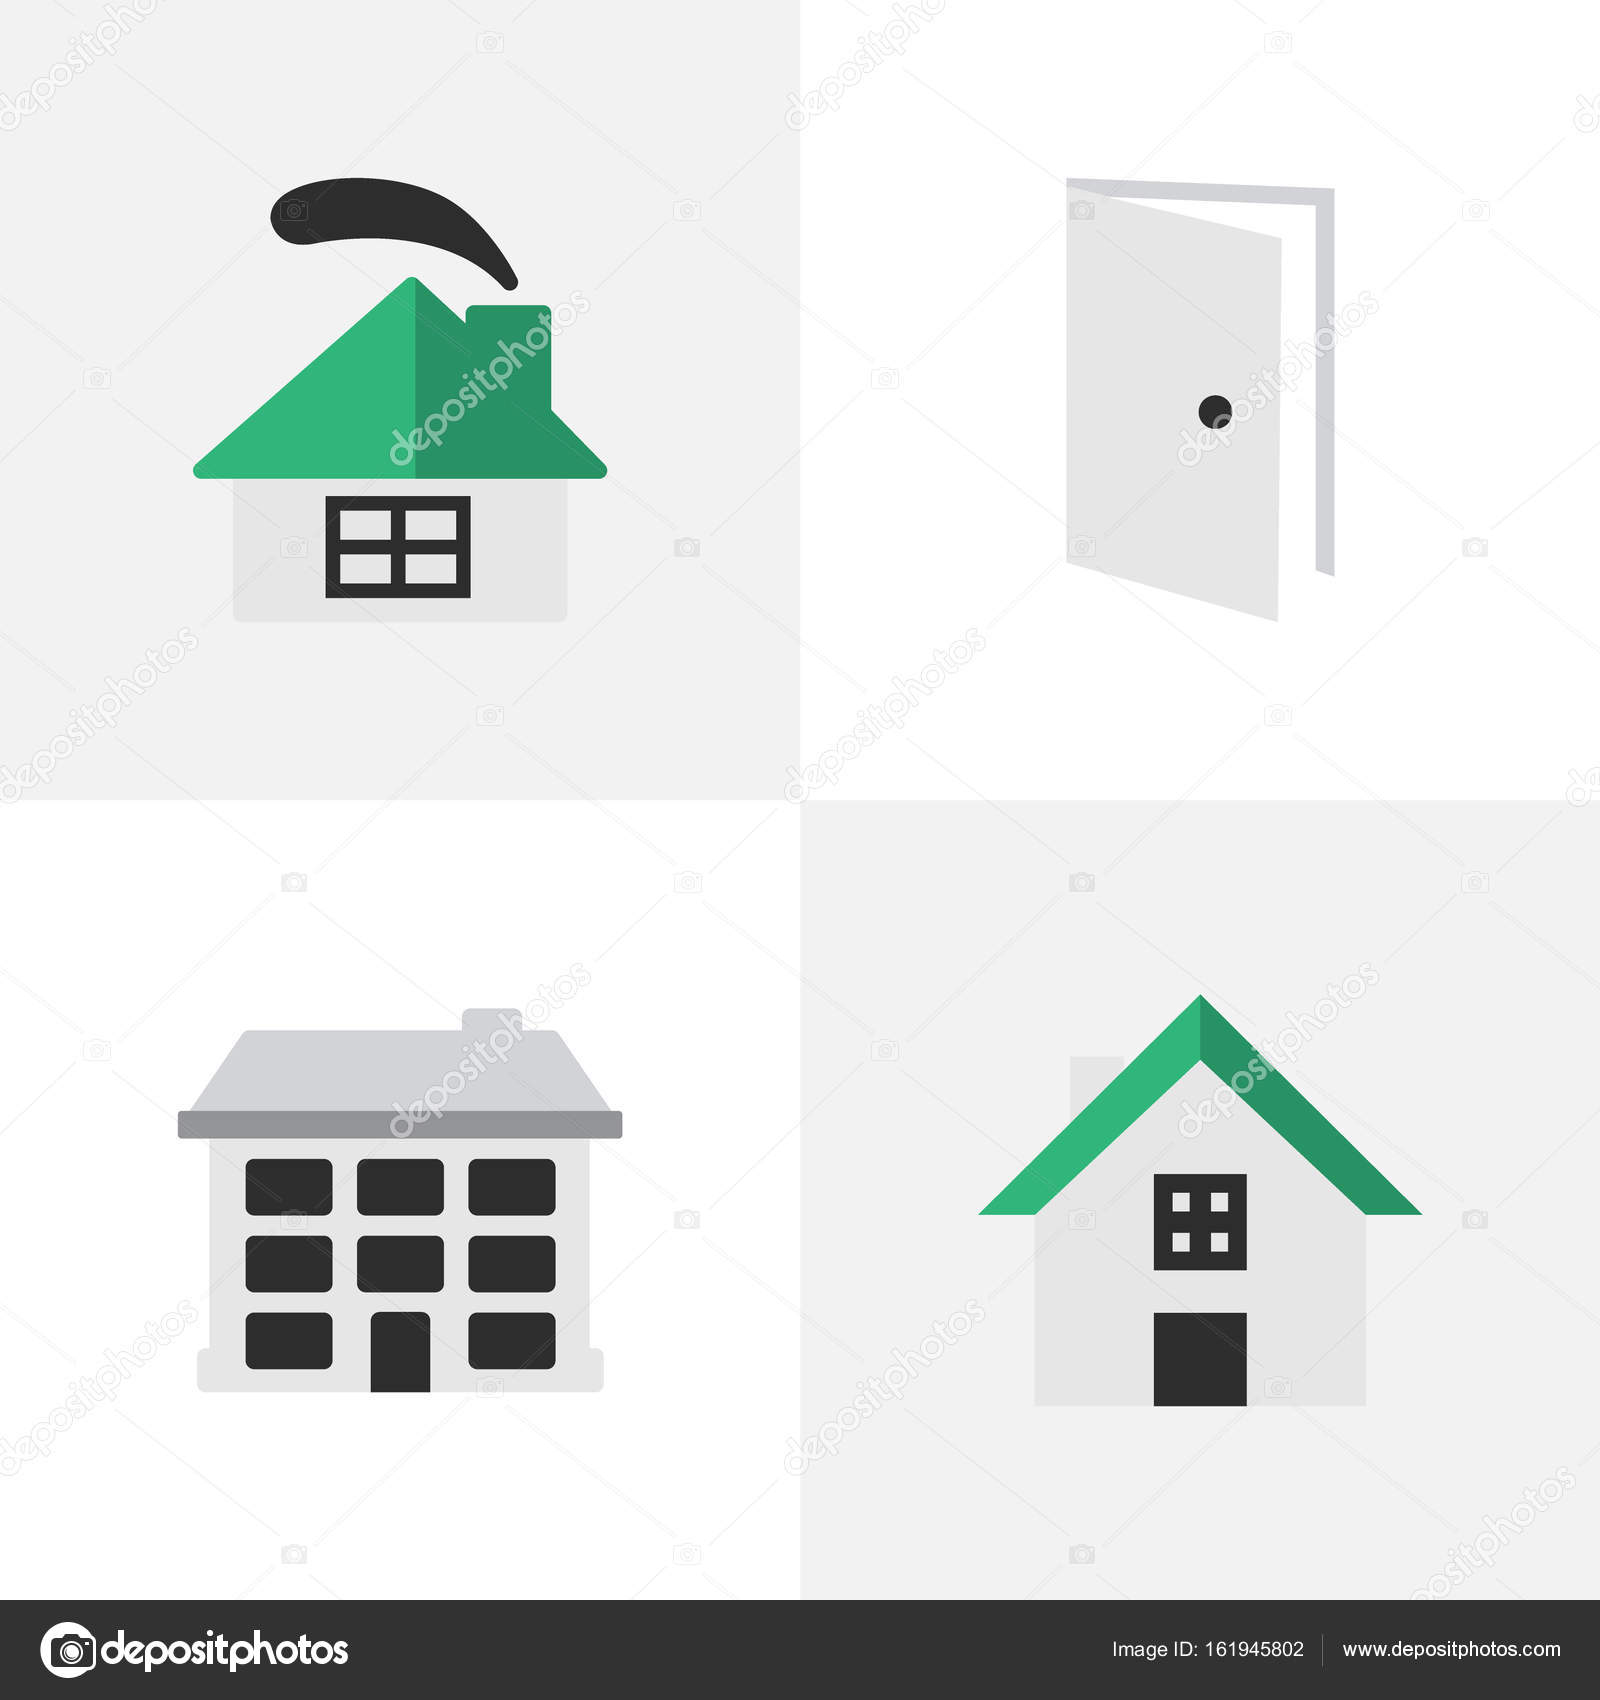 Elements Structure Dwelling Home And Other Synonyms House Entry And Door. Vector Illustration Set Of Simple Real Icons. \u2014 Vector by rashad_ashurov  sc 1 st  Depositphotos & Vector Illustration Set Of Simple Real Icons. Elements Structure ...